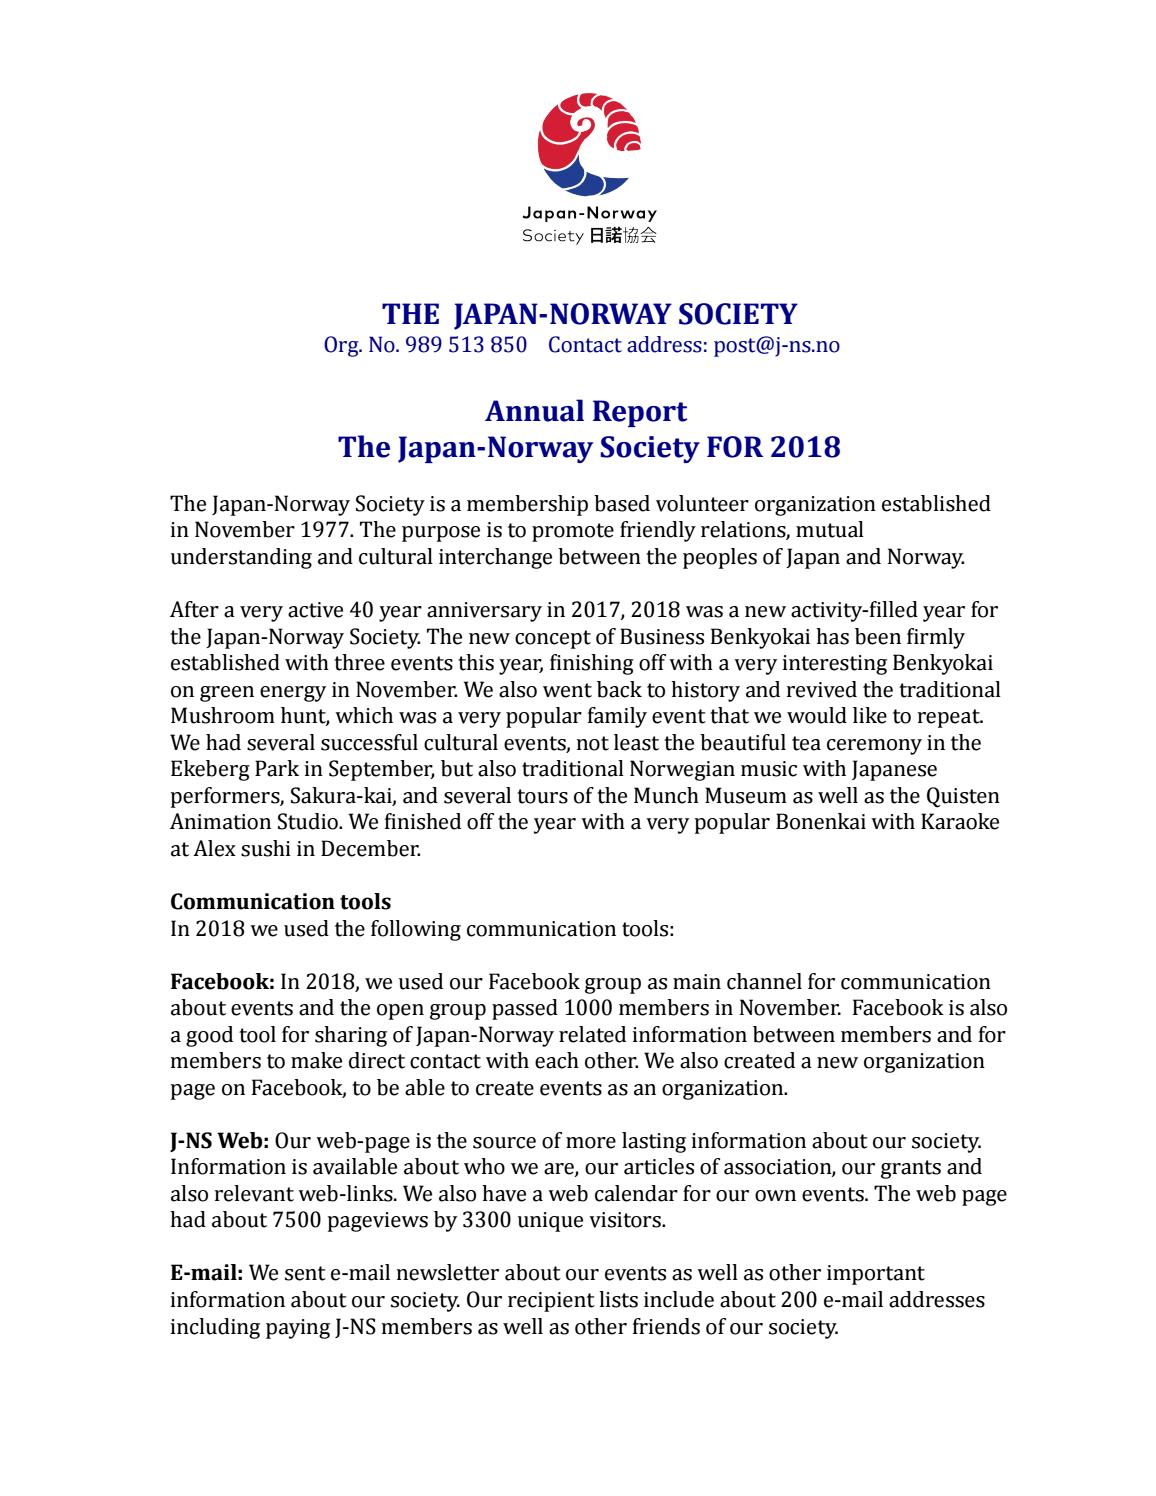 Annual Report 2018 The Japan Norway Society By The Japan Norway